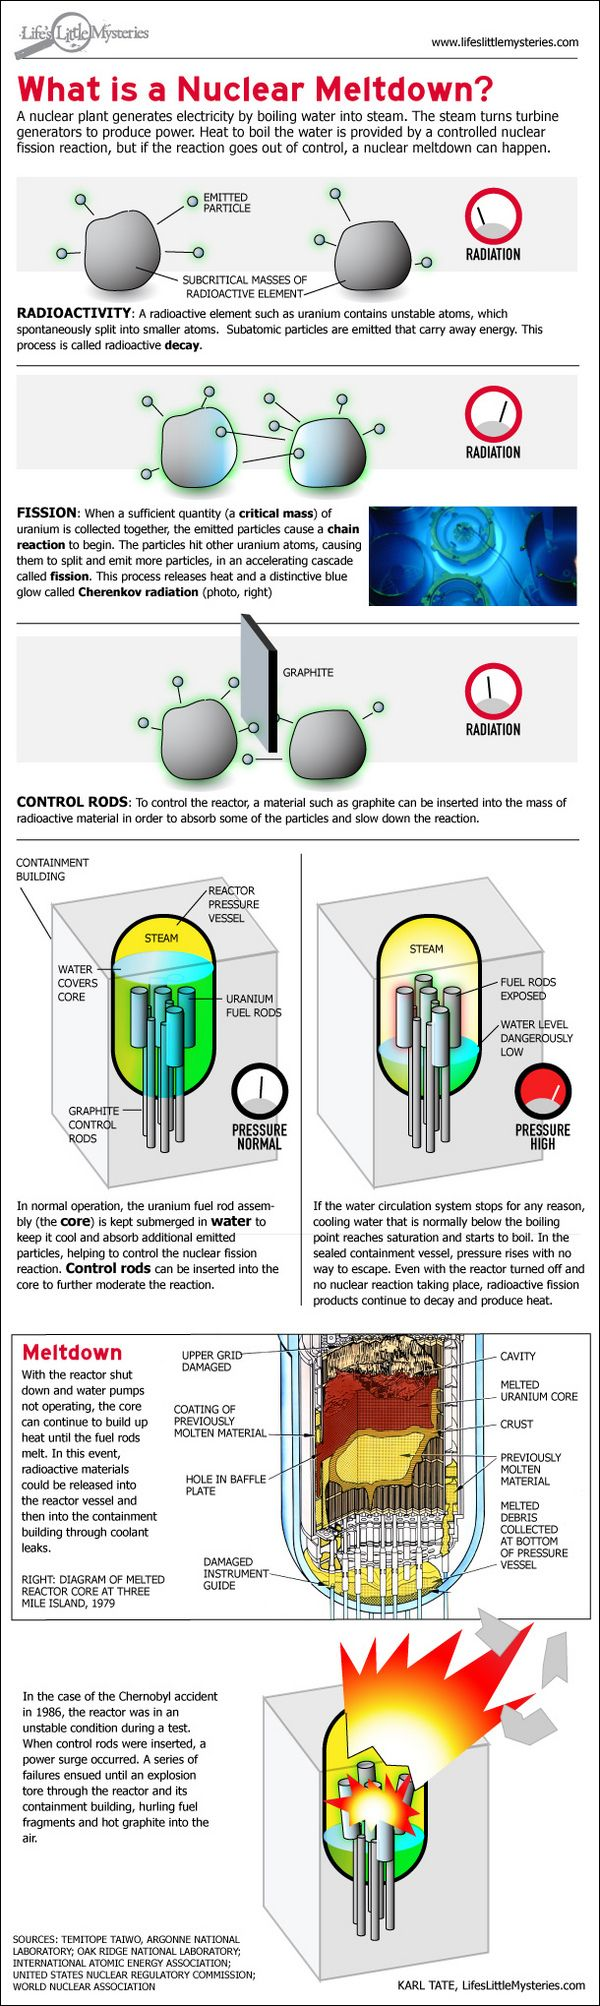 What Is a Nuclear Meltdown?